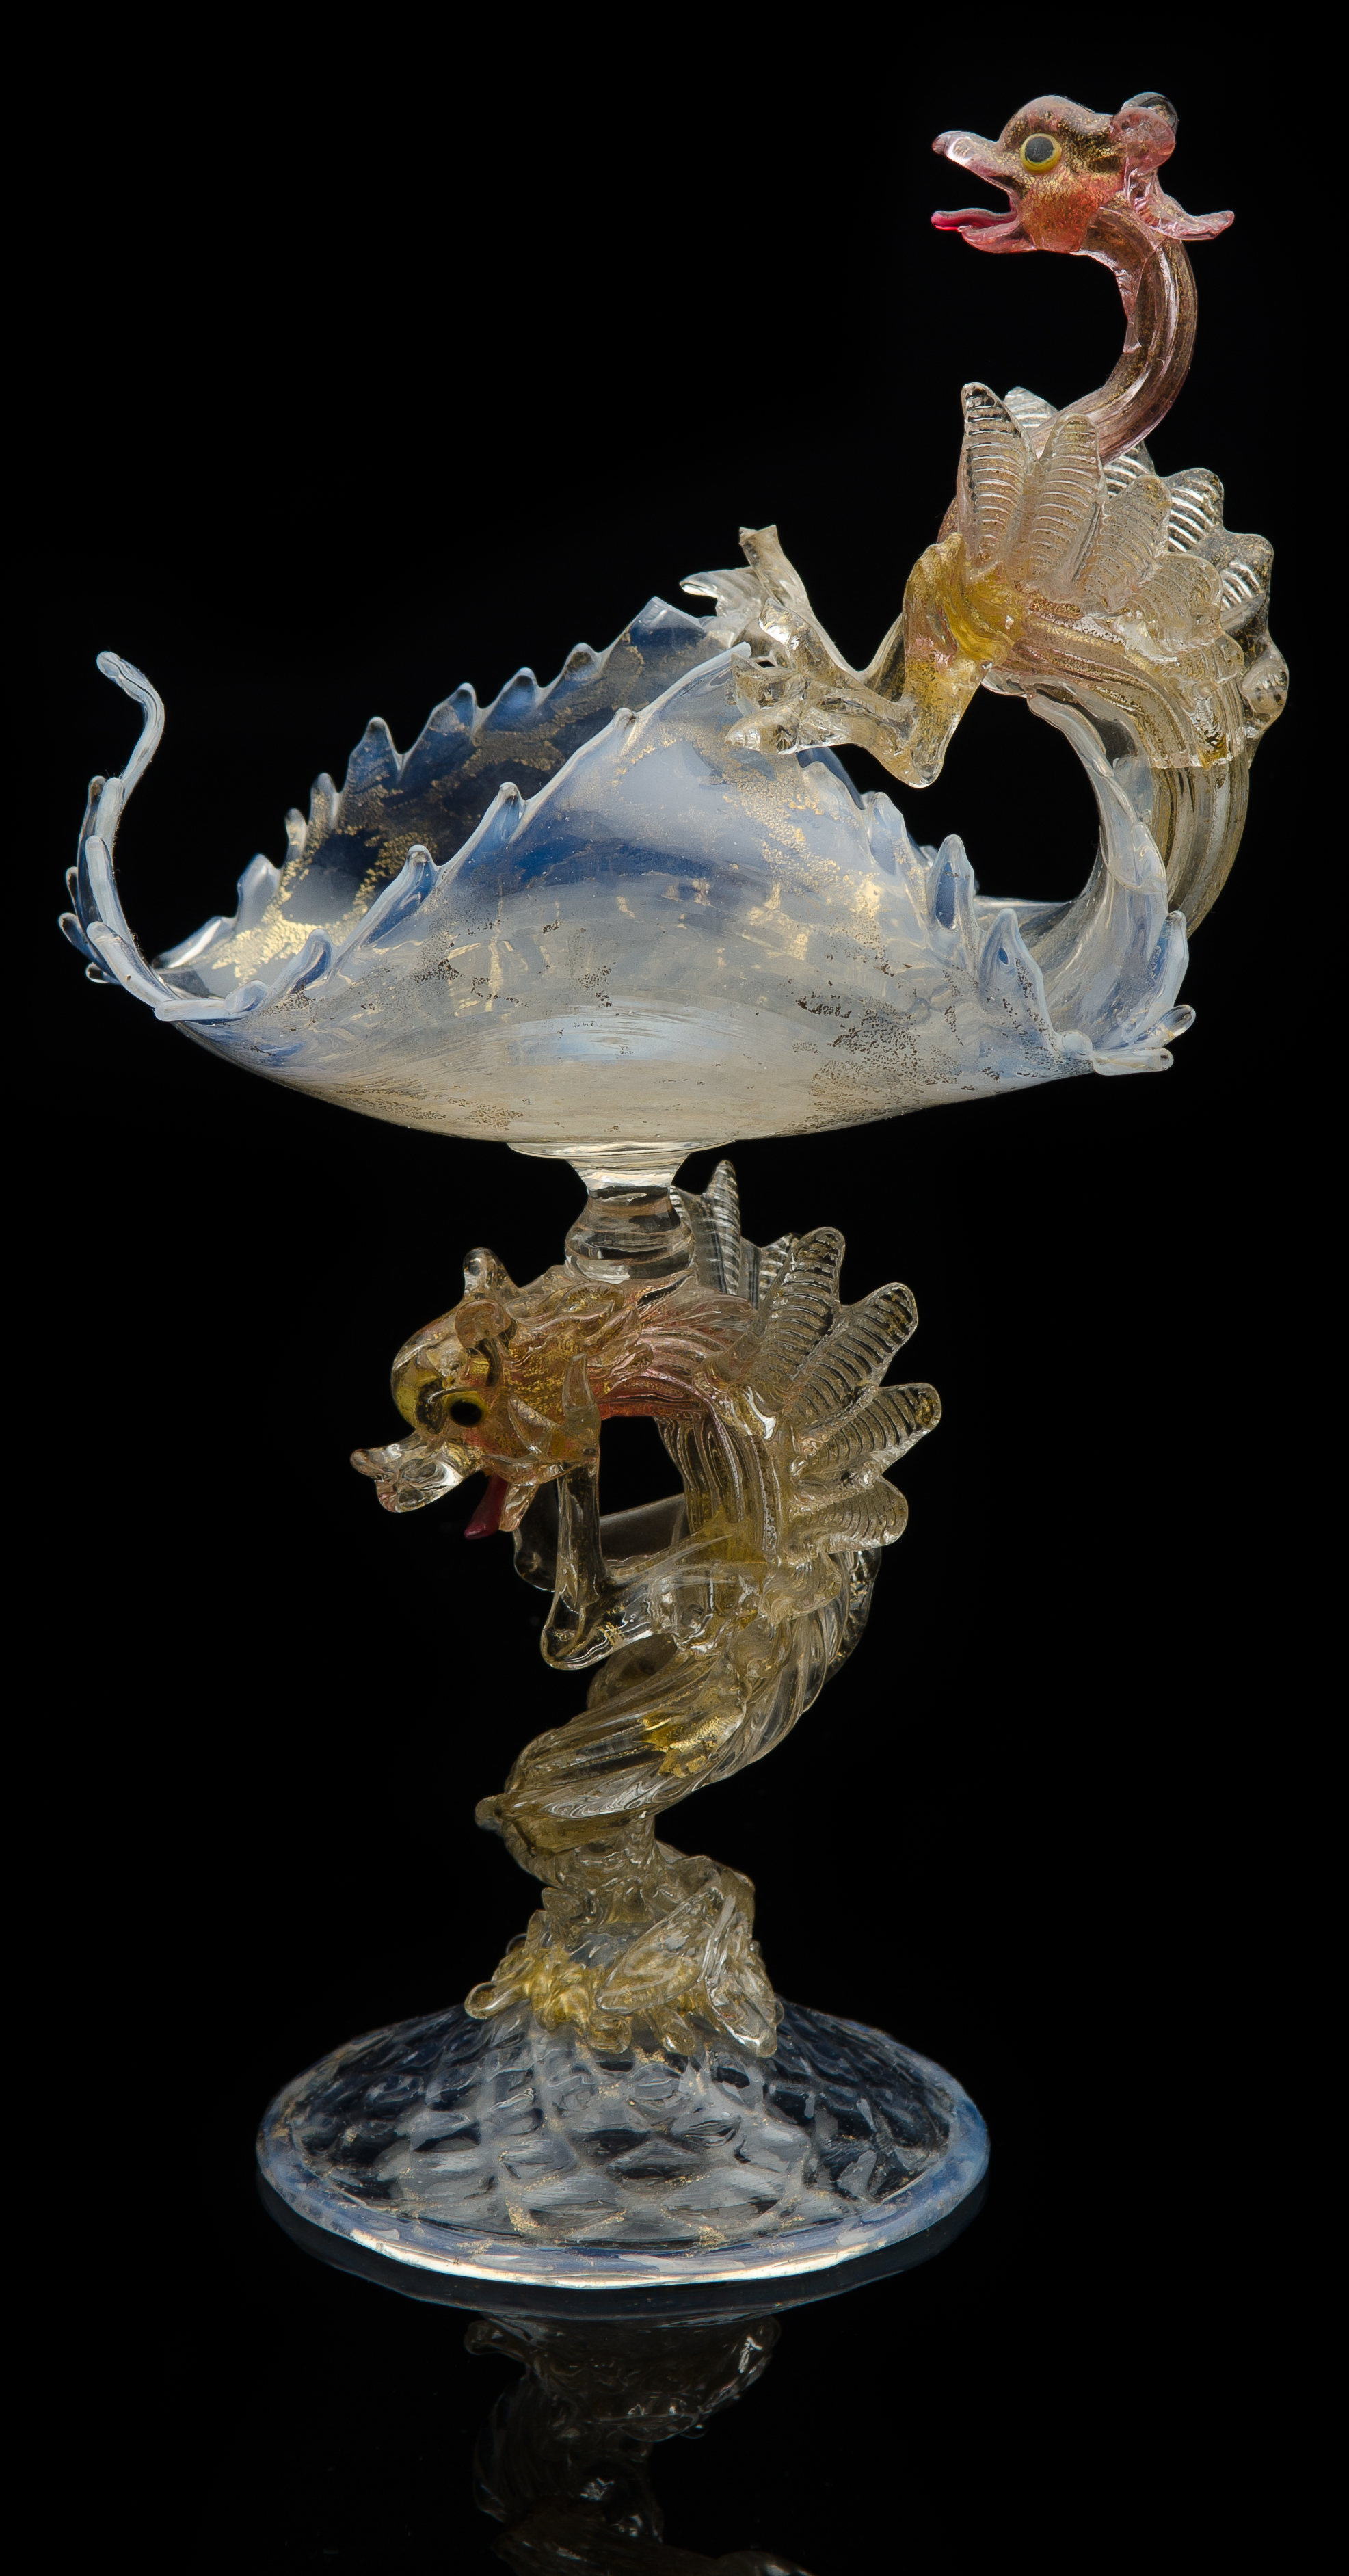 Fratelli Toso,  Opalescent Vase with Two Dog-Headed Dragons of St. George  (circa 1895, glass, 11 inches), VV.154